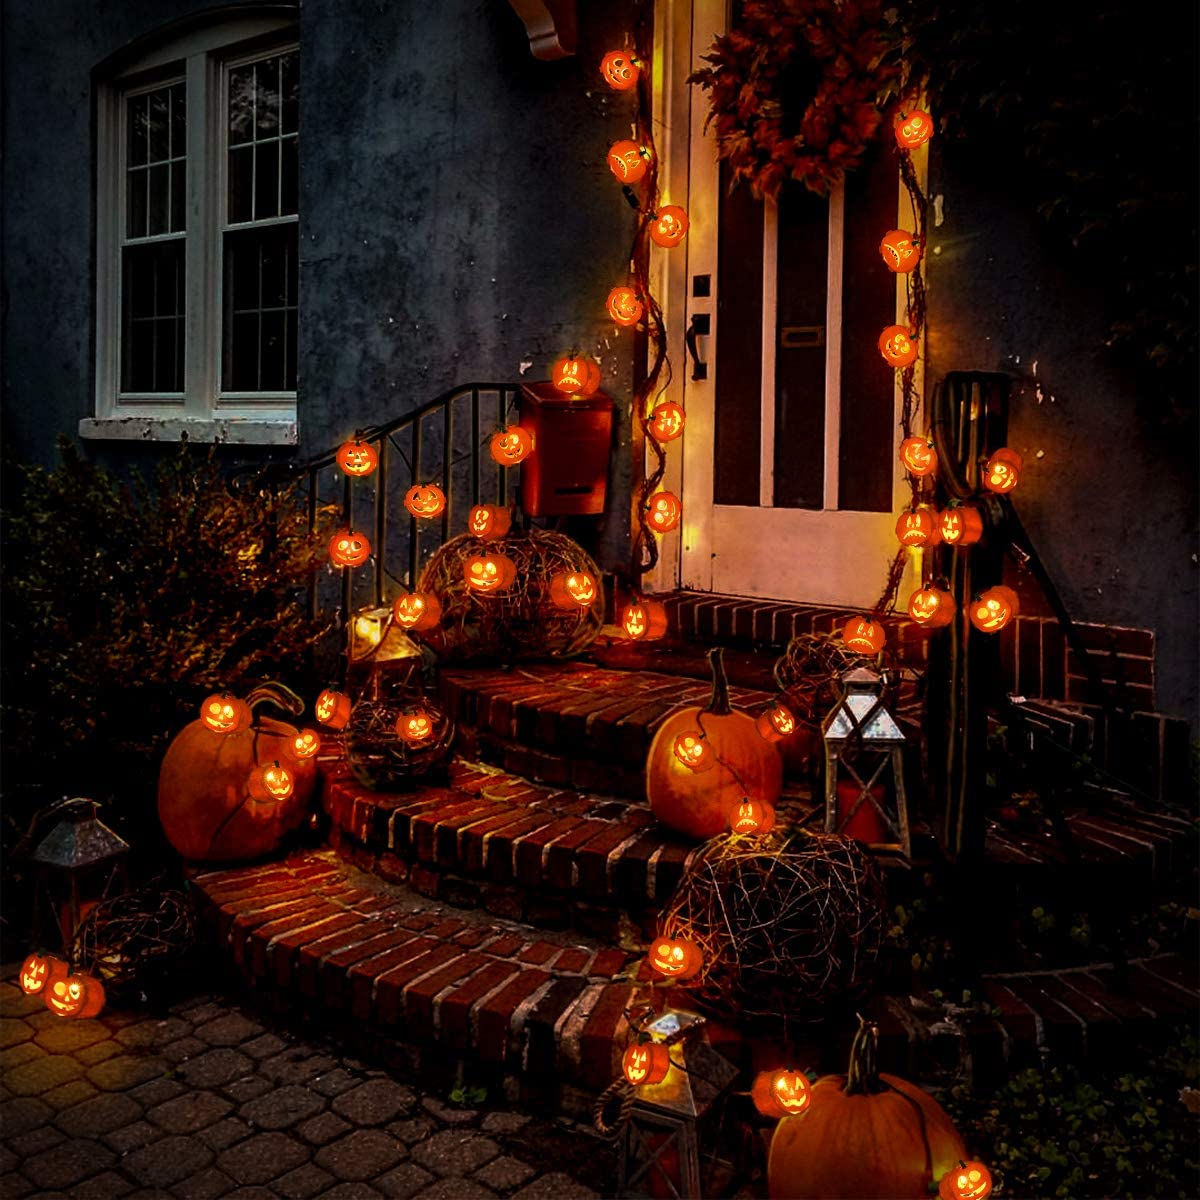 Halloween Pumpkin String Lights, 8FT Battery Operated String Lights for Indoor, Party, Halloween Decoration